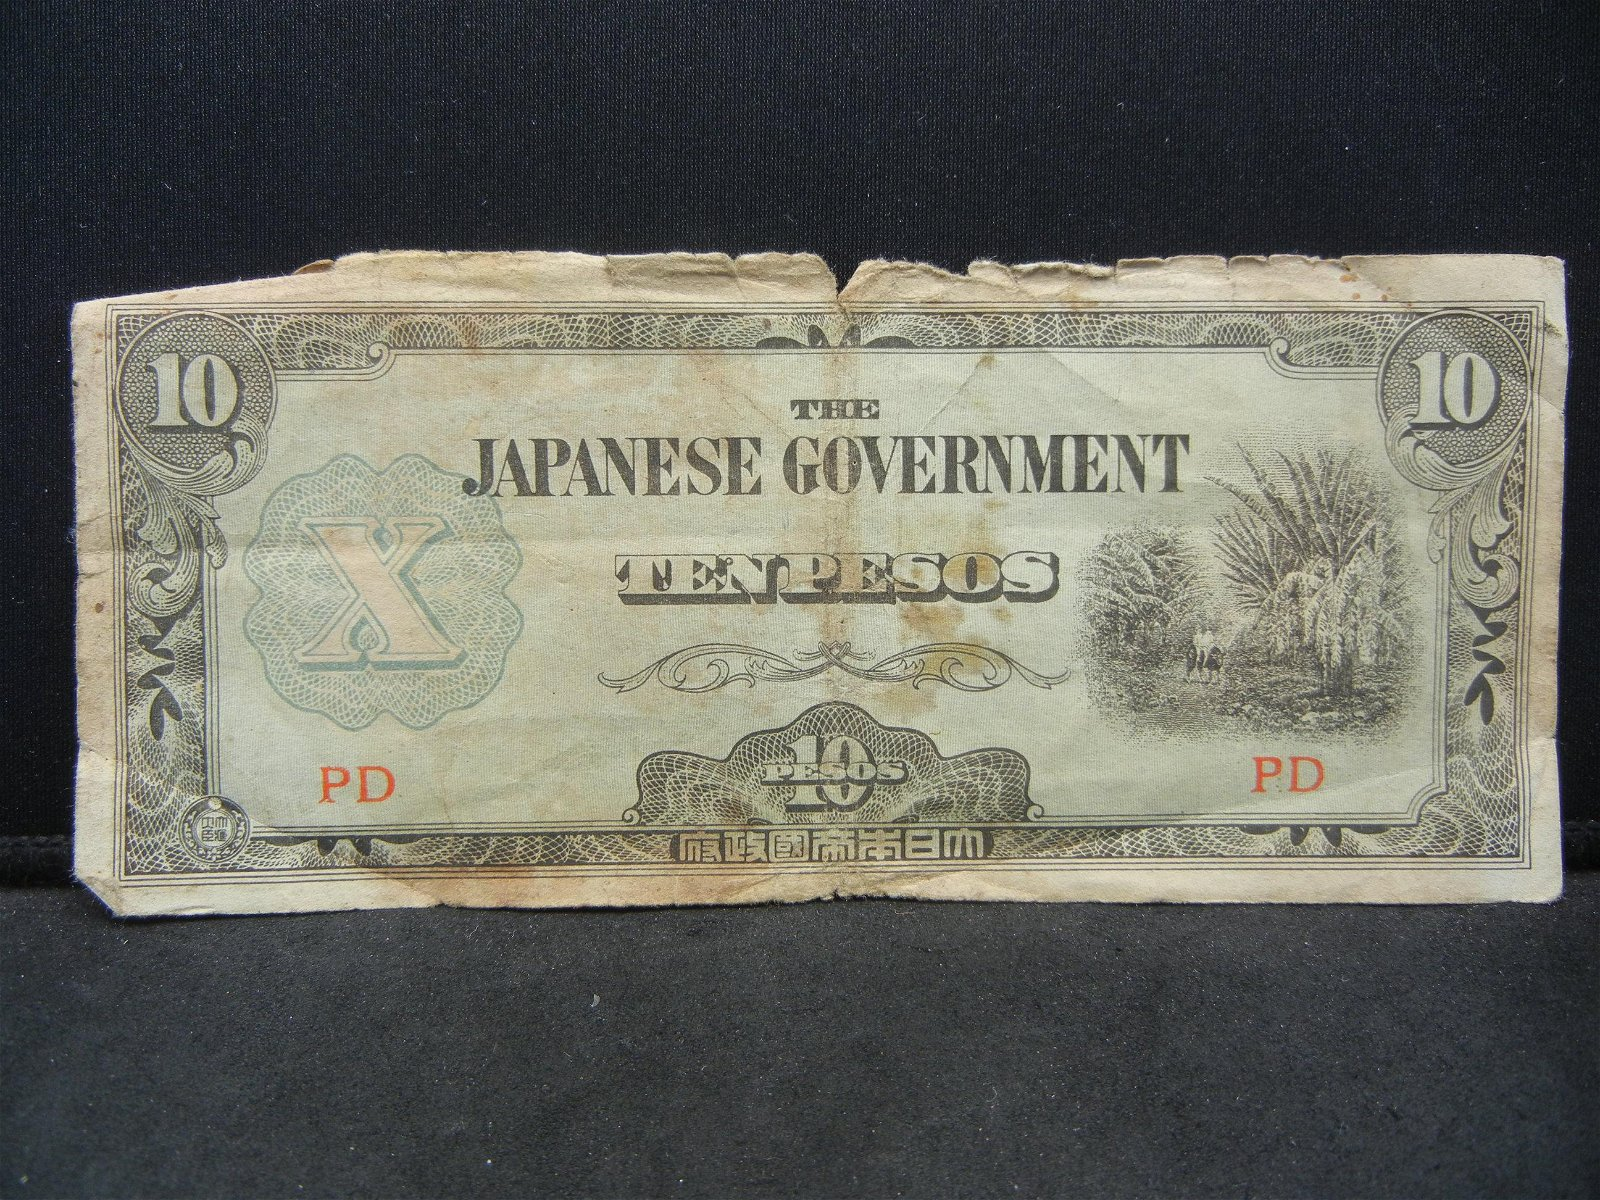 Japan Government Ten Pesos WWII Invasion Currency,